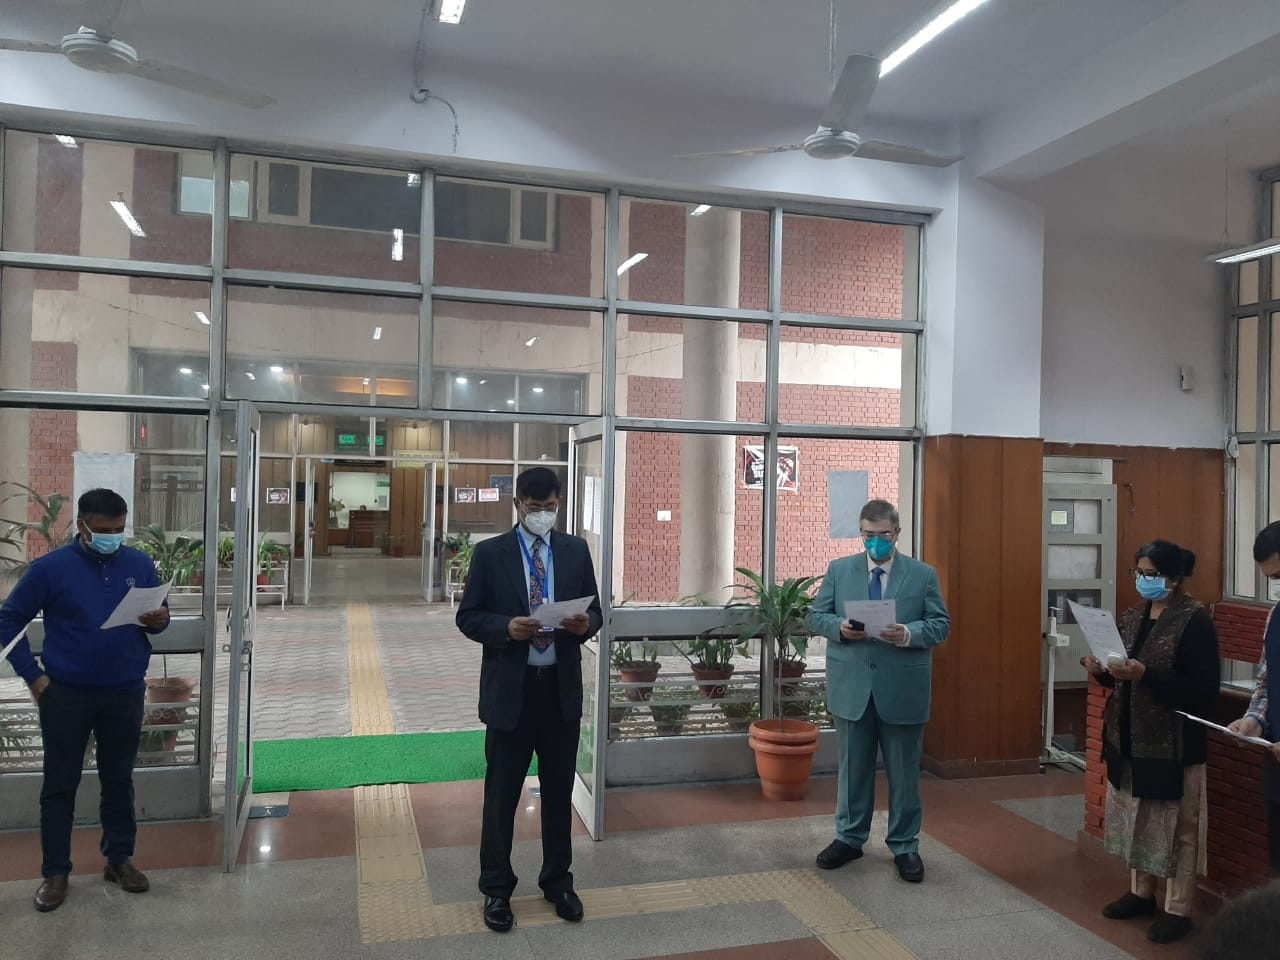 Celebration of Constitution  Day on 26.11.2020 at CGST Zone Chandigarh